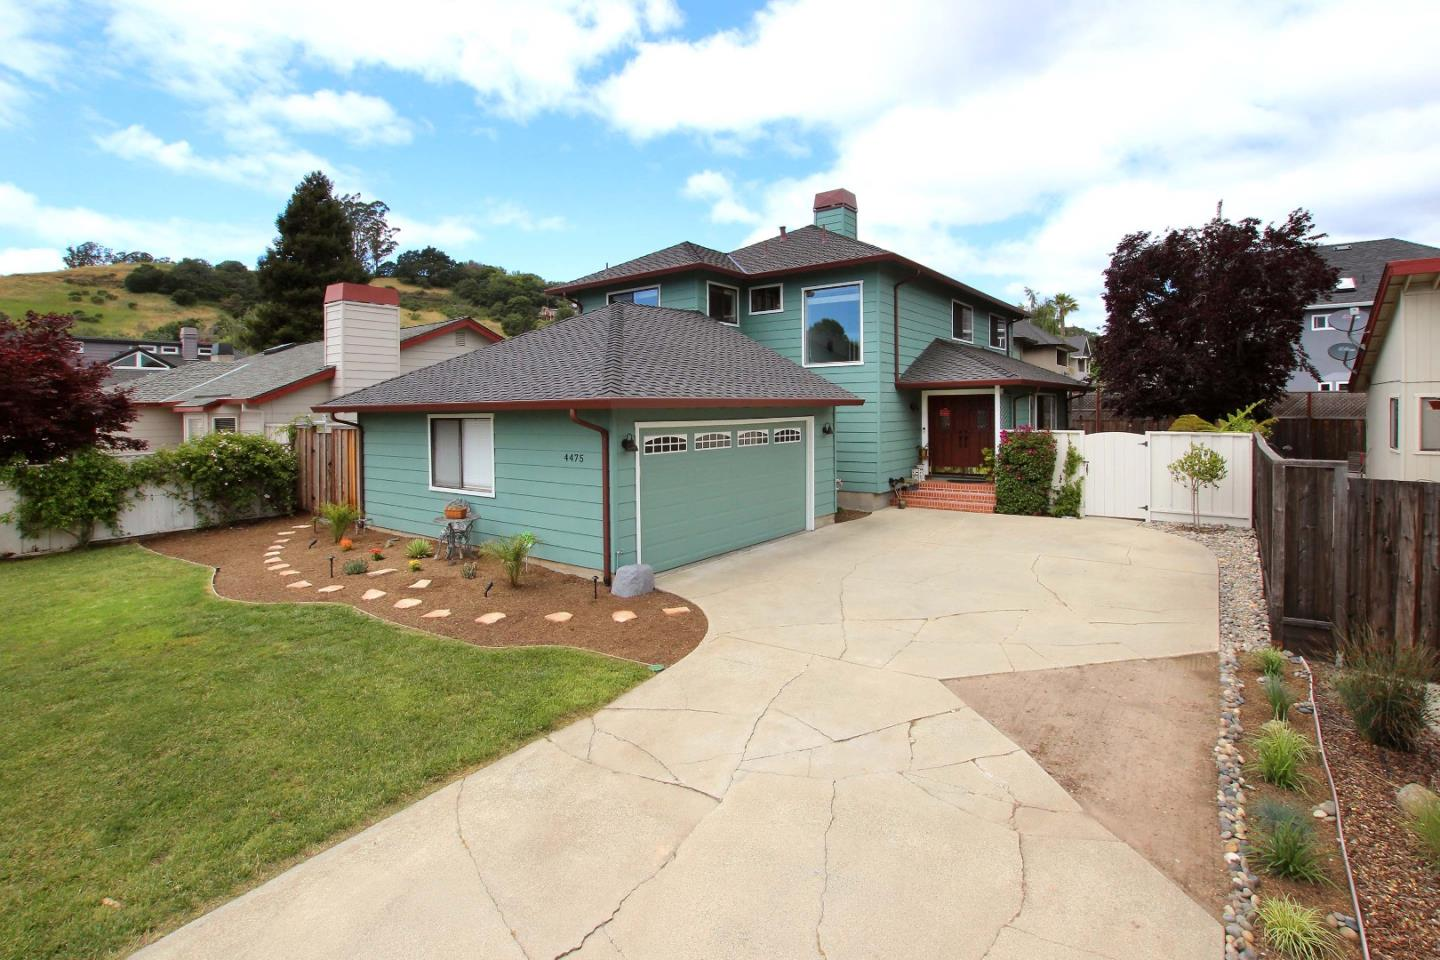 A stunning presentation of this home located in the Evergreen Estates community awaits your discerning eyes. With its bright and airy open floor plan inside, this wonderful home is complemented by the rear yards stylish design with a focus on entertainment. From the moment you step through the front door this home reveals itself with views of the living room, family room, kitchen, dining room and that amazing rear yard. The theme of the upstairs living area is one of spaciousness and comfort. Two large bedroom and one huge master suite with a huge walk in closet and spacious master bath with a tub in shower design. And be sure to feel the thick padded carpeting. Its like walking on a cloud. So please allow yourself plenty time to explore this home inside and out. This is a no shoes home so Id suggest shoes that slip on and off easily so you can experience the flooring textures inside and then slip those shoes back on and savor the rear yard and all its distinct areas and amenities.